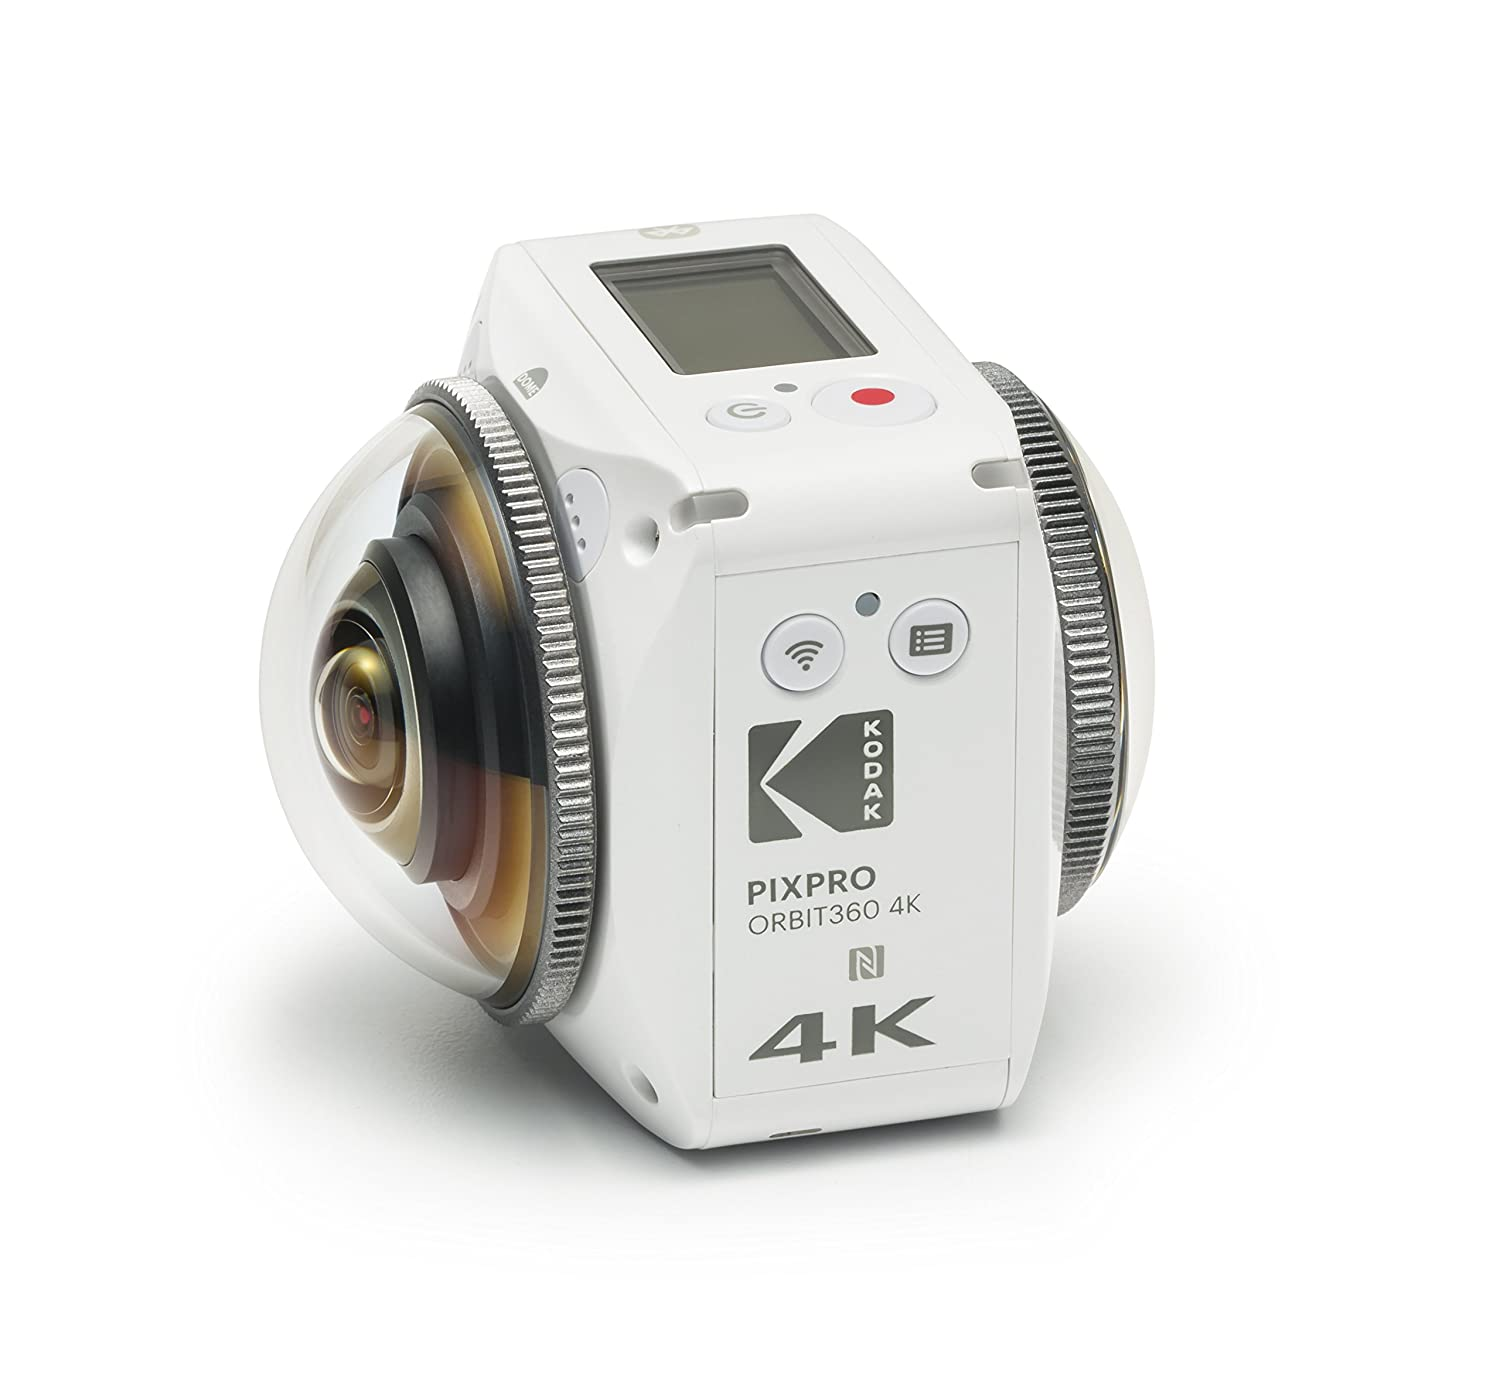 Kodak (コダック) PIXPRO ORBIT360 4K 360° VRカメラ [並行輸入品] (Satellite Pack) B0752NQMP2Satellite Pack